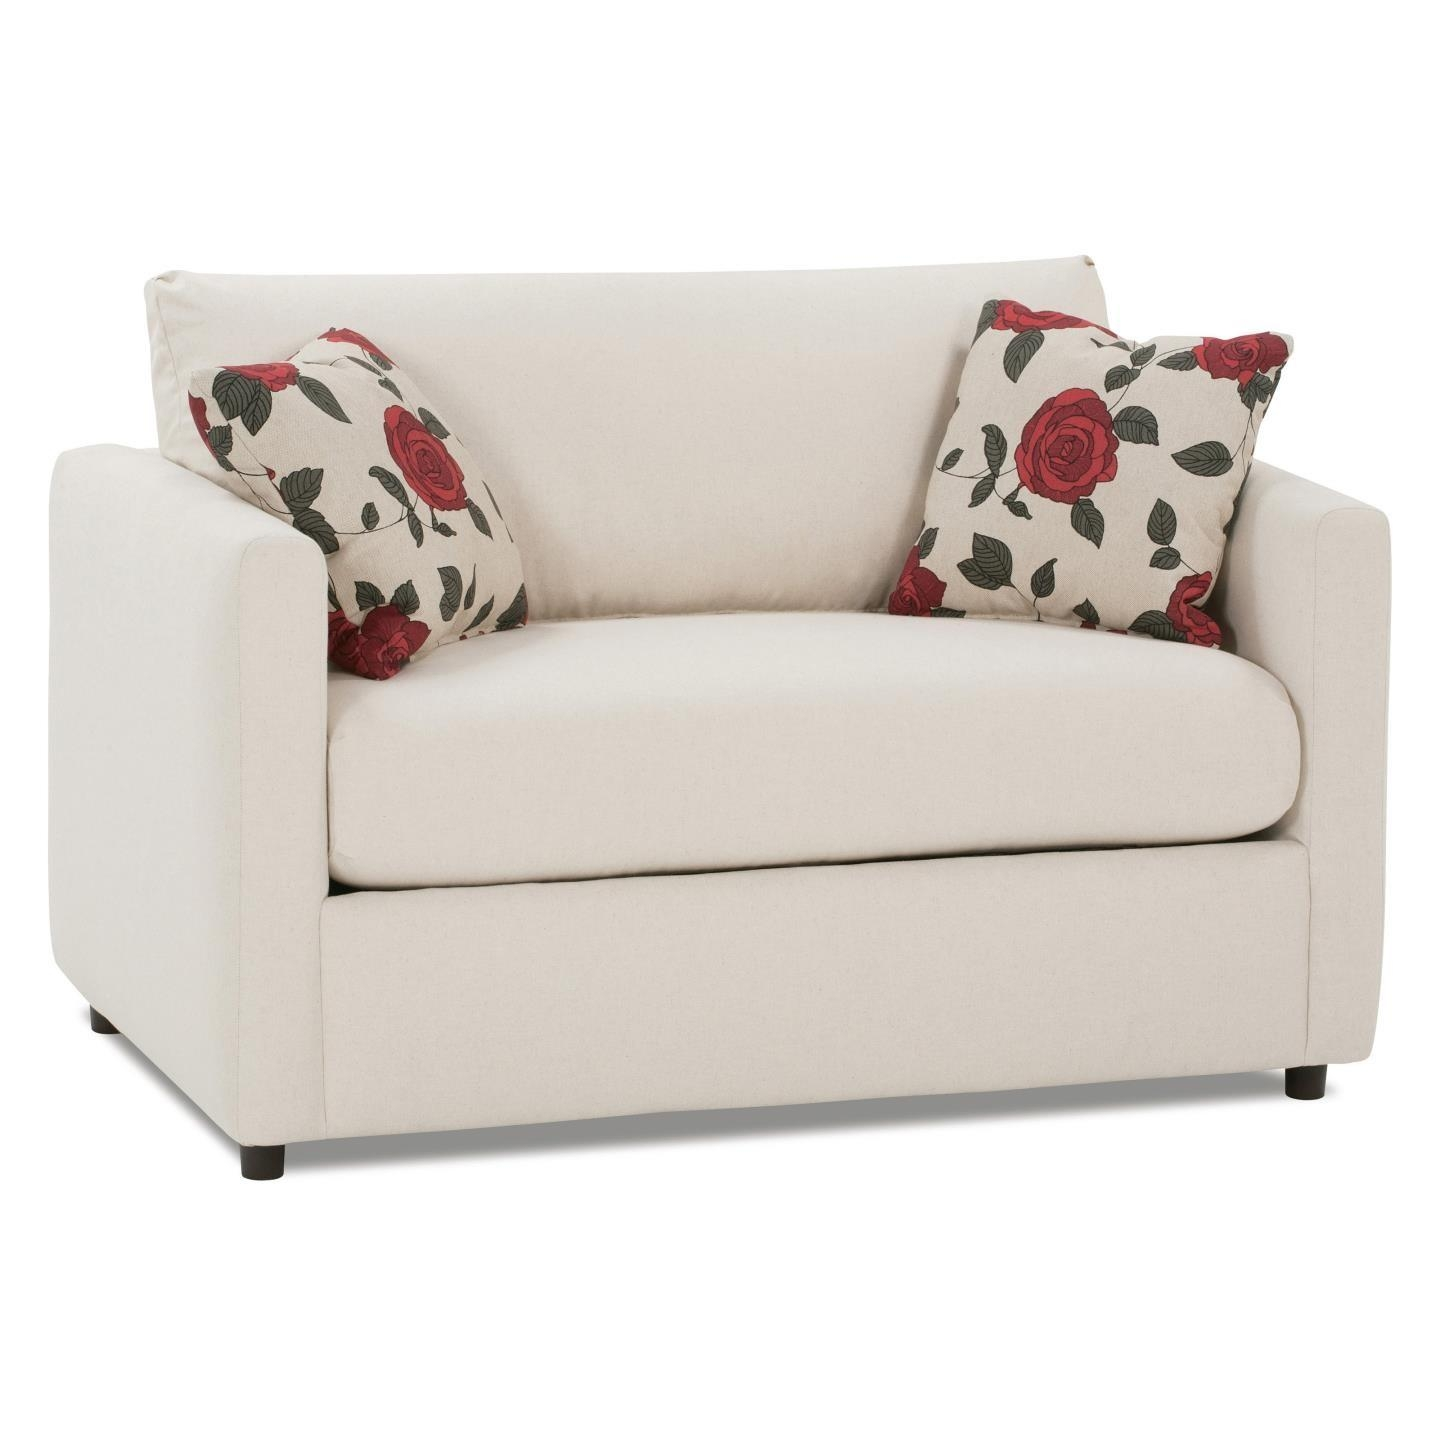 Furniture: Pouf Ottoman Ikea To Match Your Favorite Sofa Or Within Footstool Pouffe Sofa Folding Bed (Image 6 of 20)